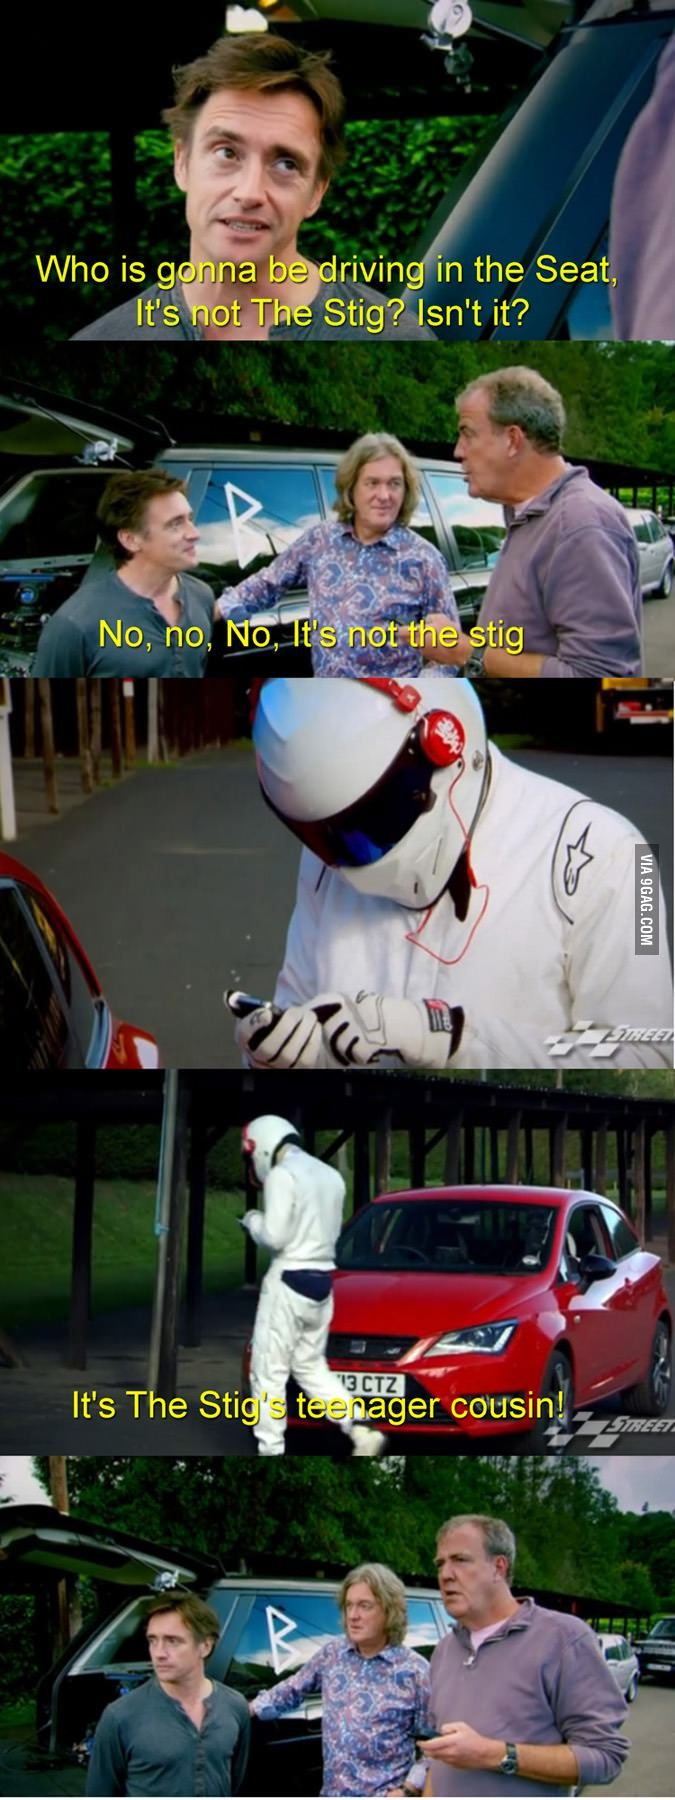 Just Top Gear being Top Gear